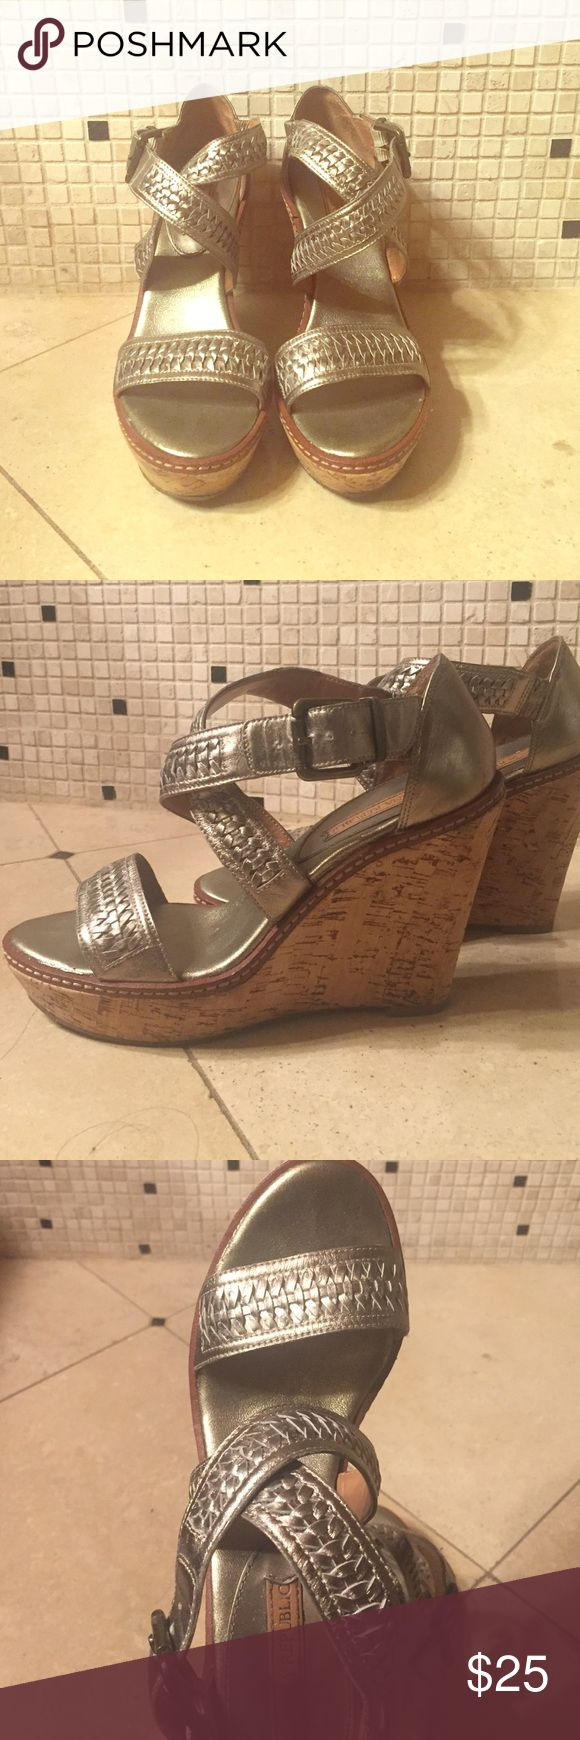 Metallic wedges These leather wedges are in great condition and so comfy! The braided strap keeps your foot secure and padded bottom allows you to last all day in these. Extra bonus that the metallic color is super neutral and goes with anything! Banana Republic Shoes Sandals